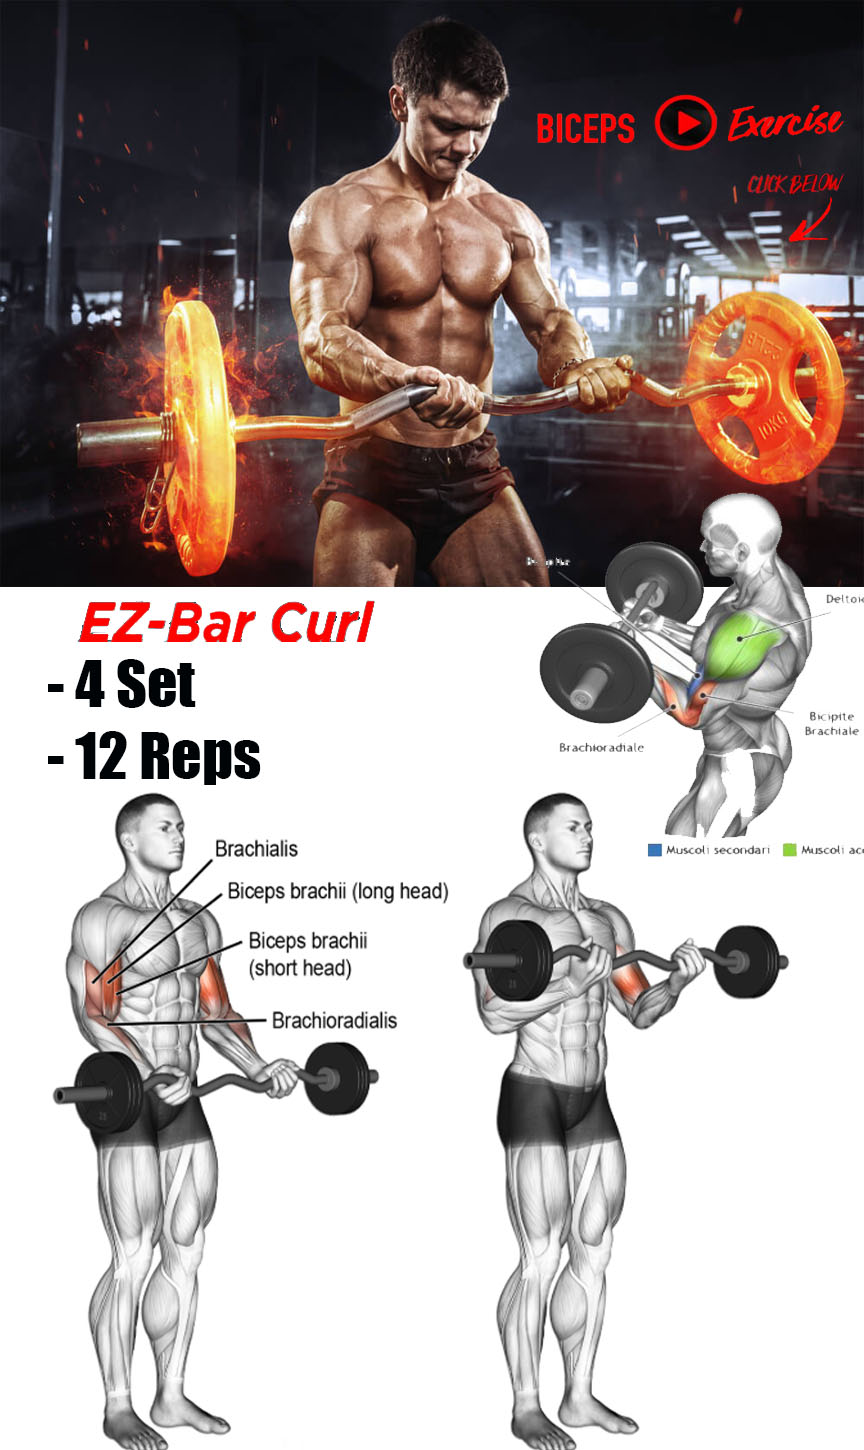 TOP WORKOUT FOR BICEPS